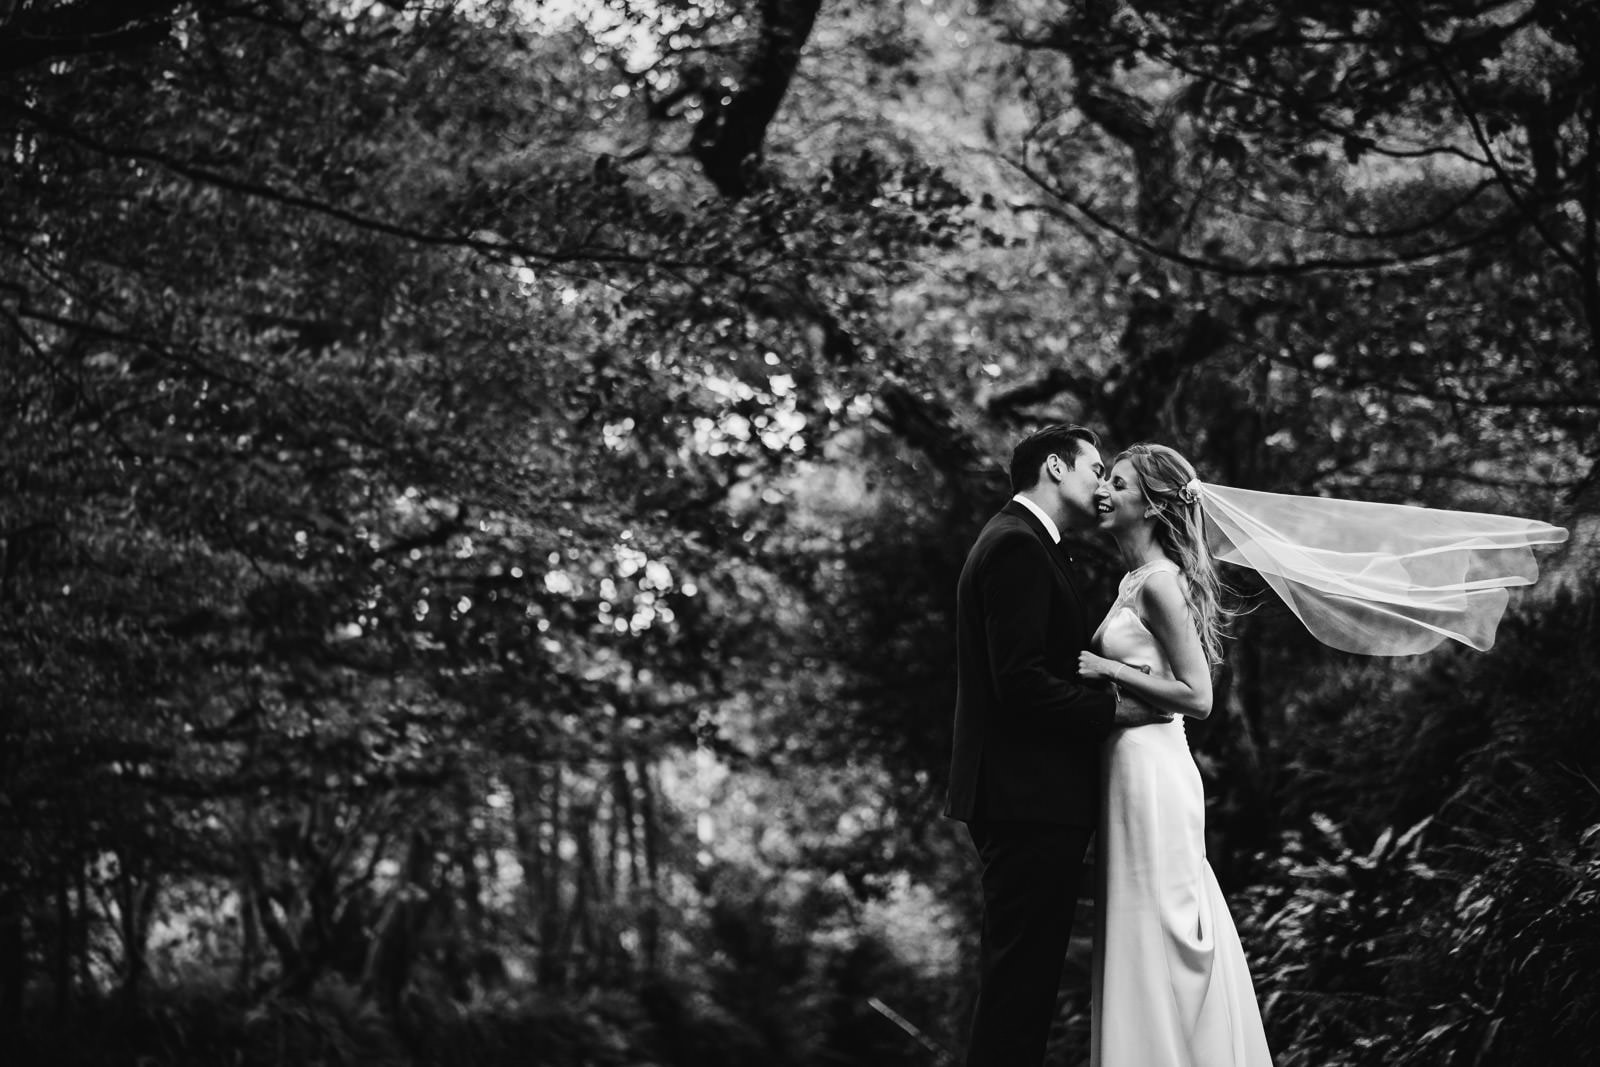 Wedding Photography at Trenderway Farm